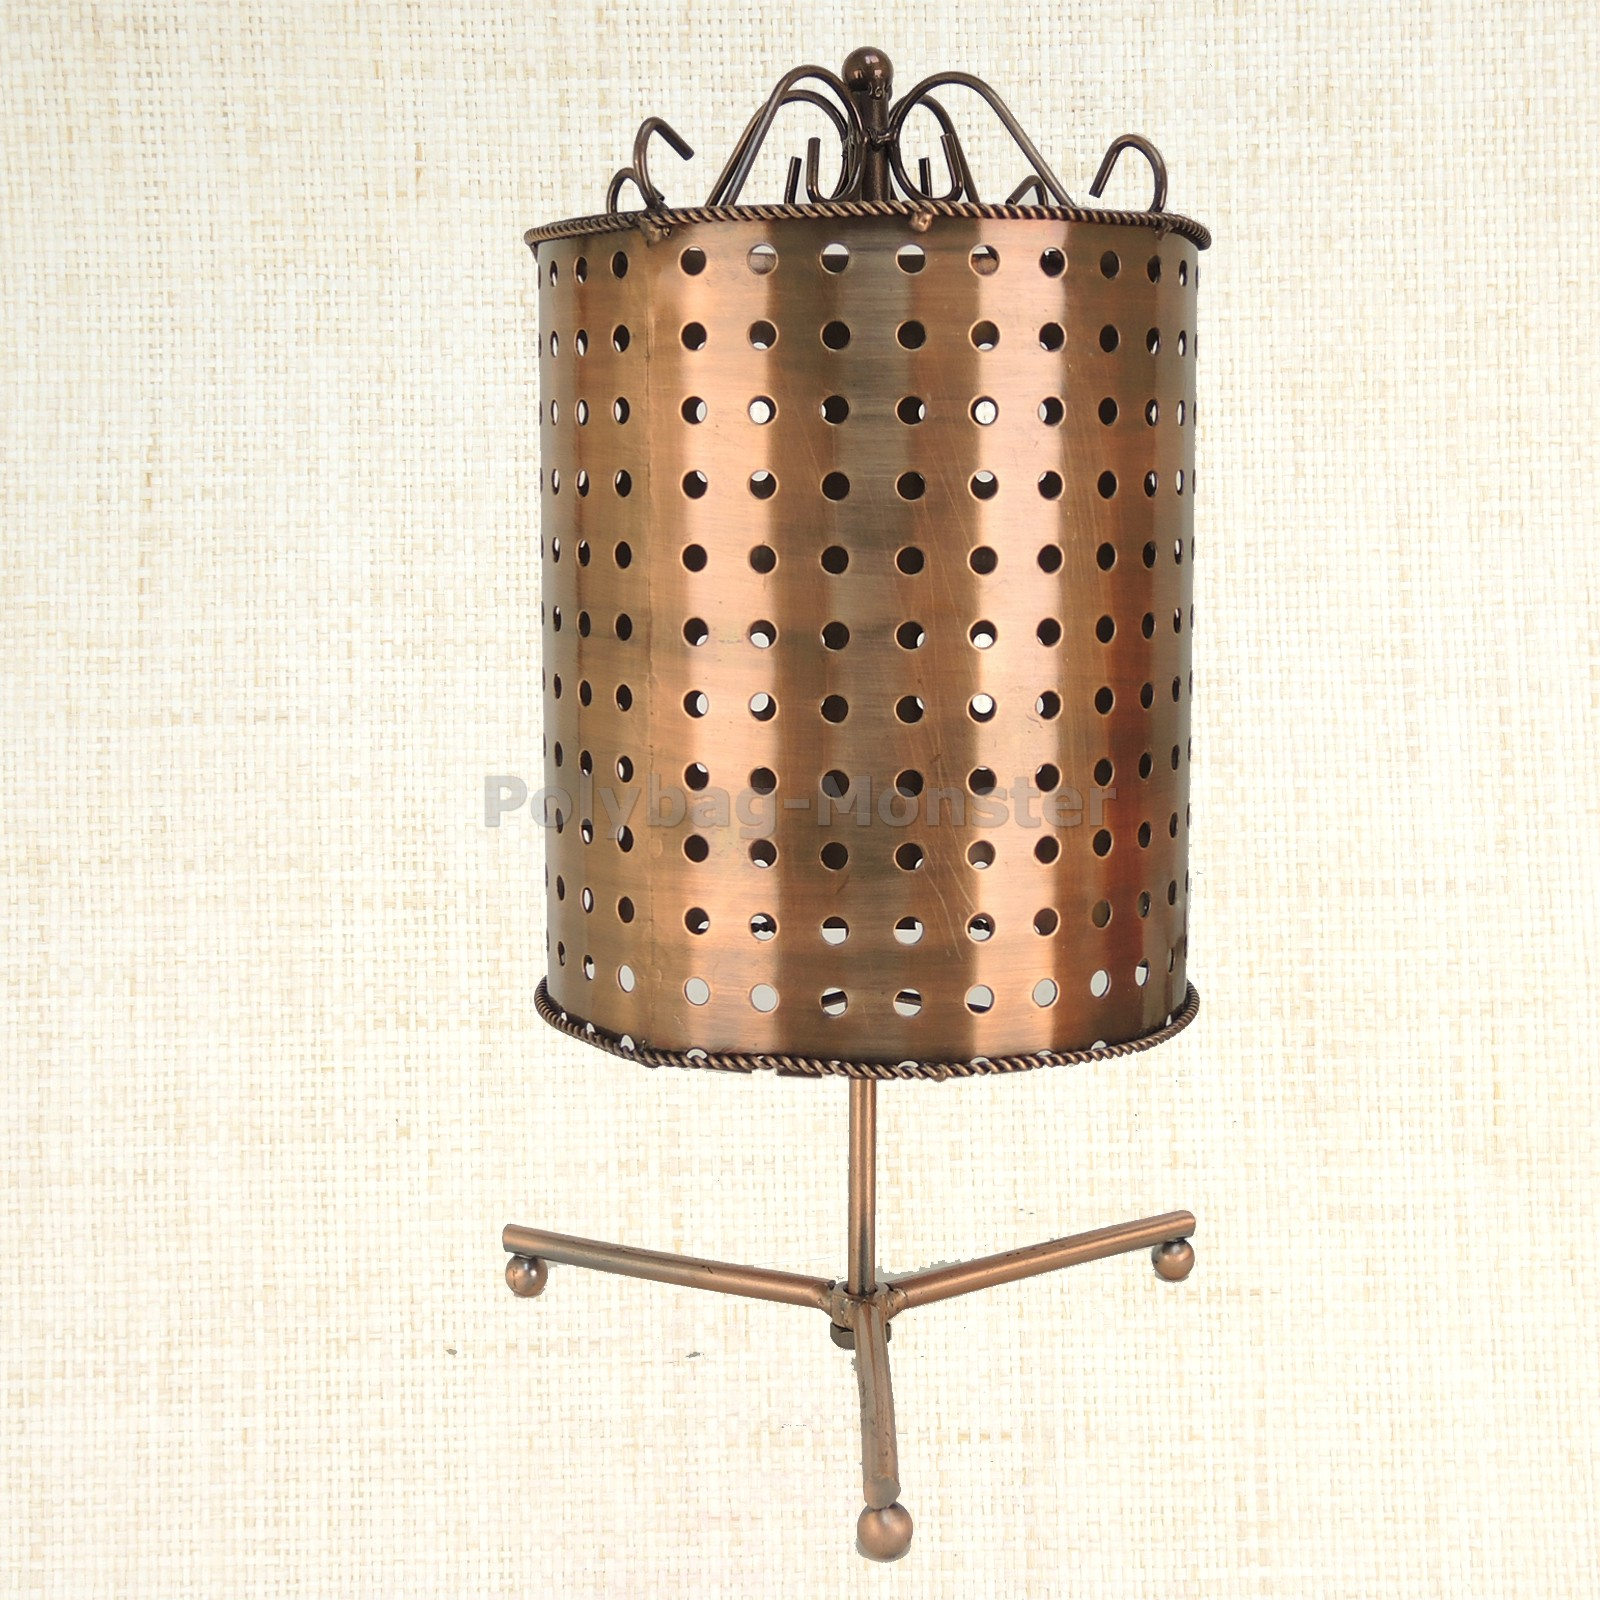 Details about Circular Pegboard Swivel Retail Jewelry Display Stand